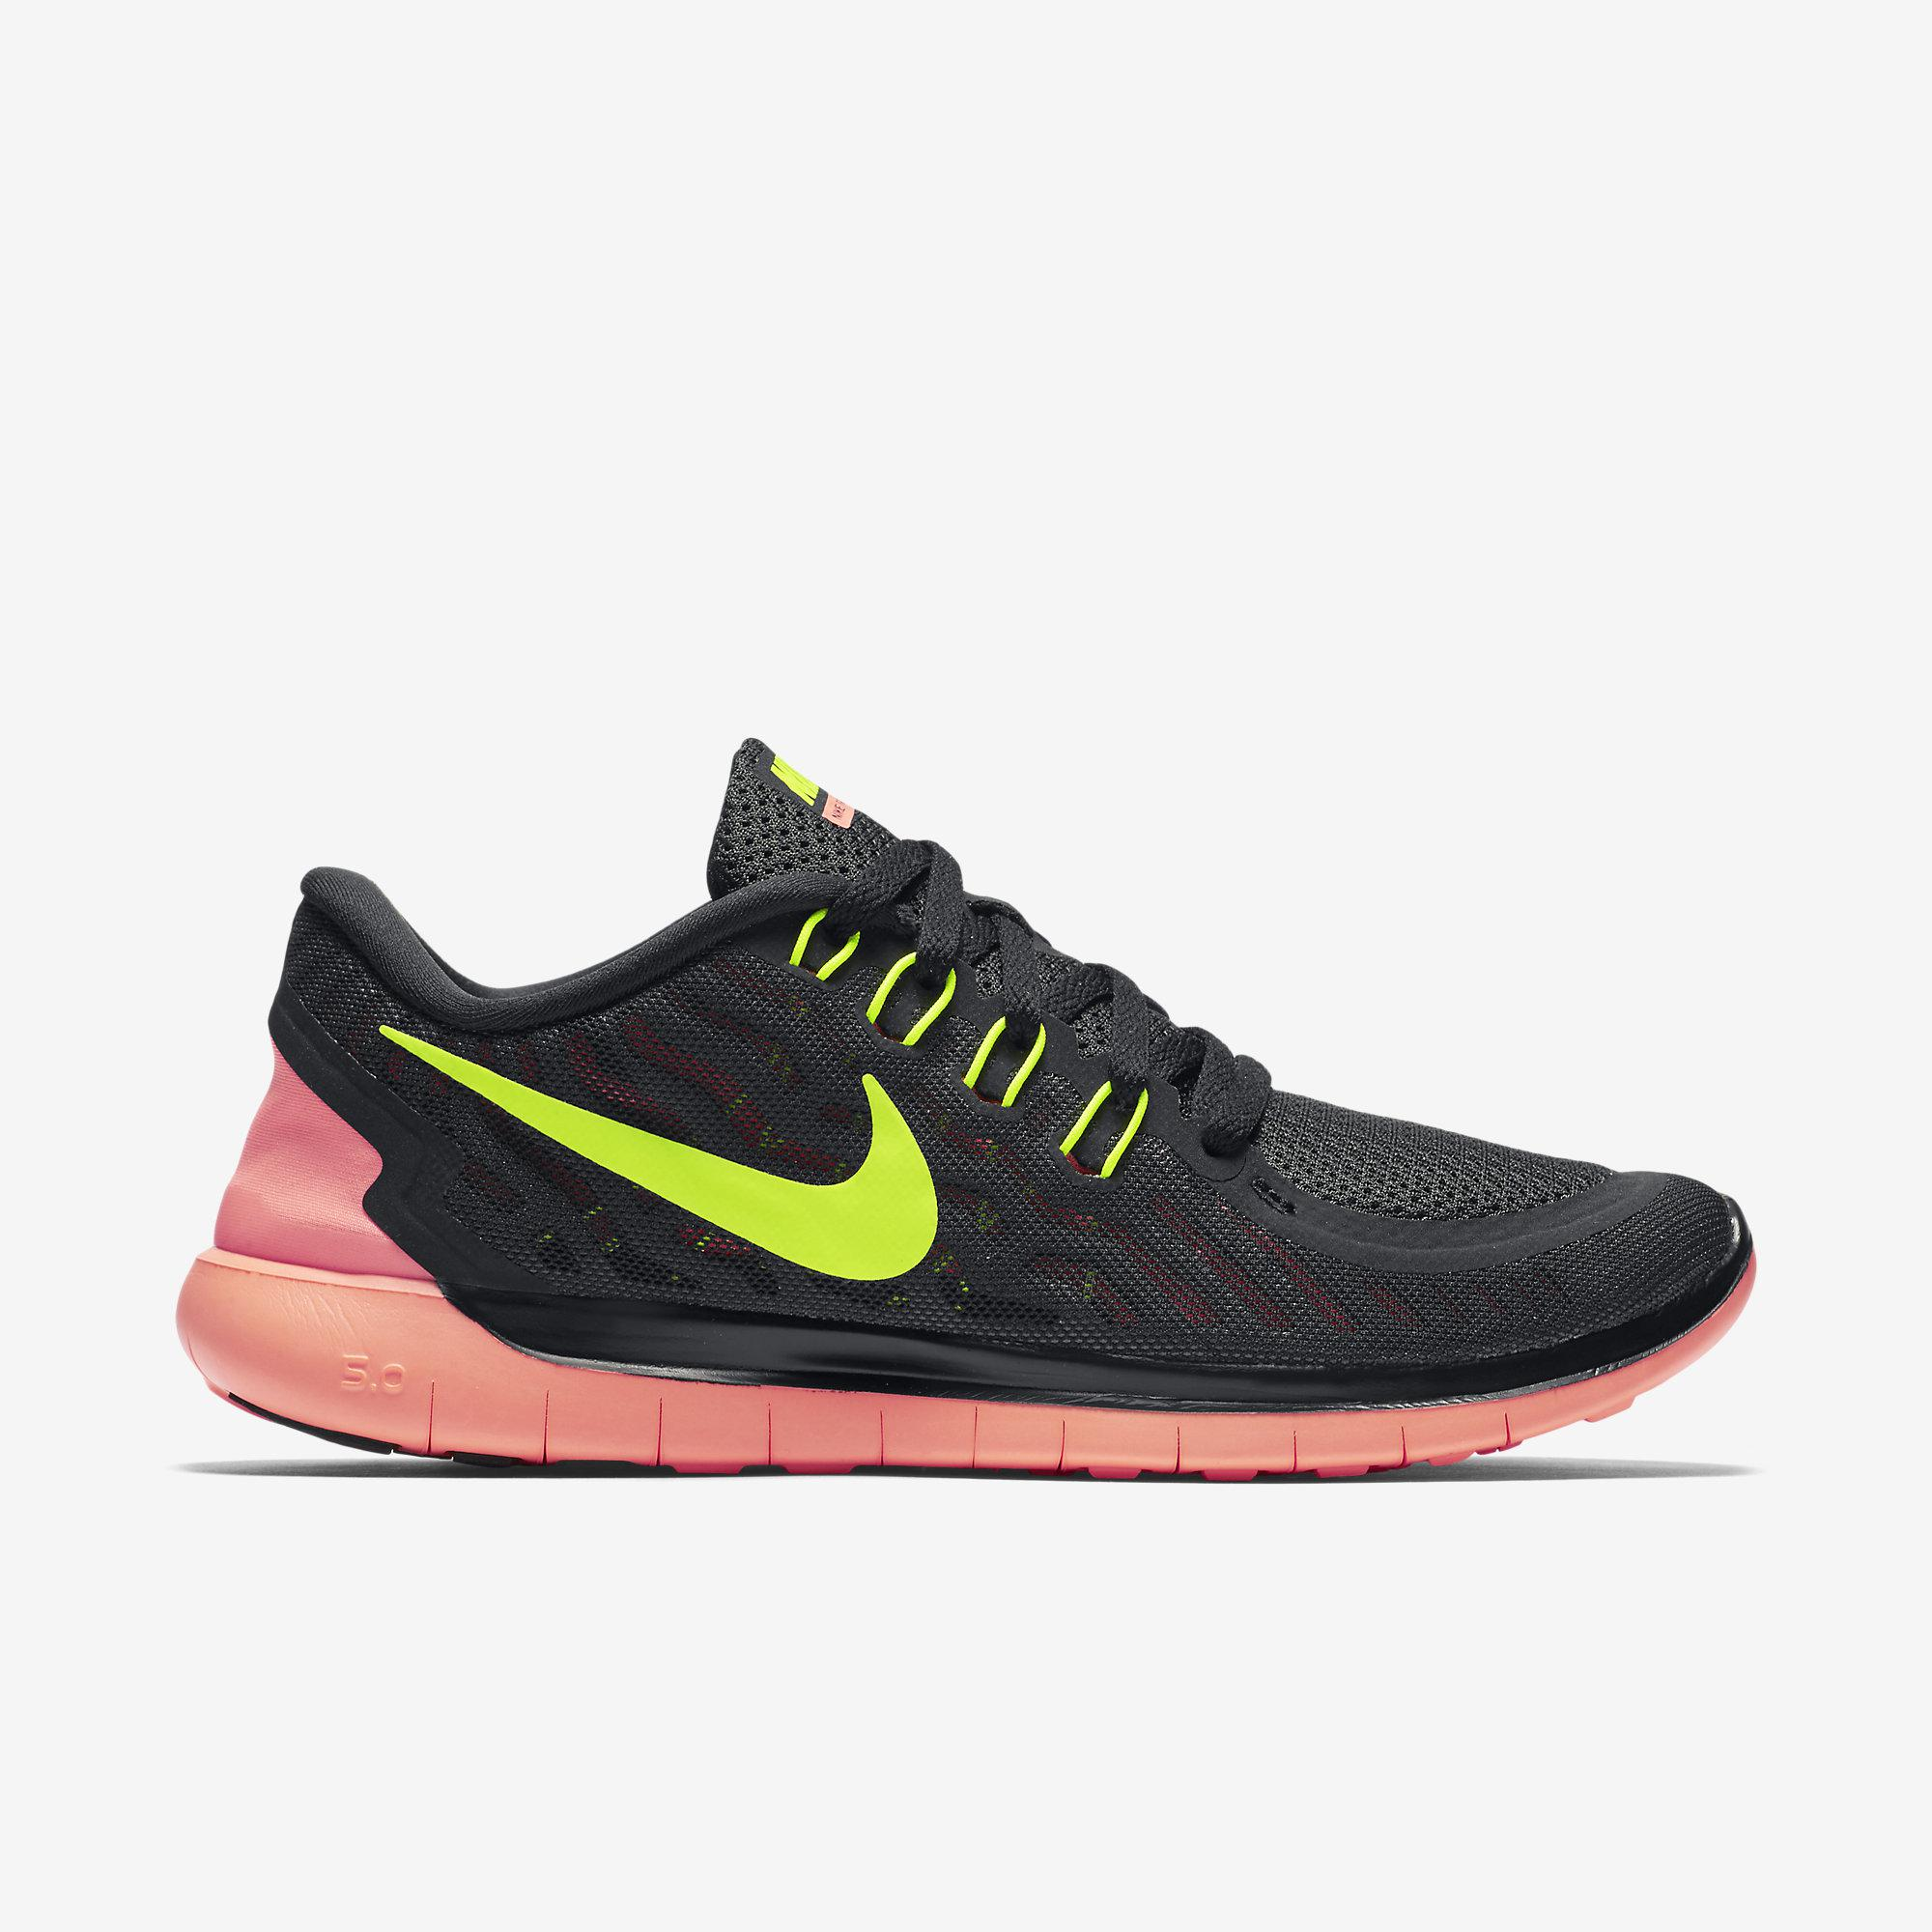 Free Blackyellowmango 0 Nike Shoes Running 5 Womens pz7w54Wq1v